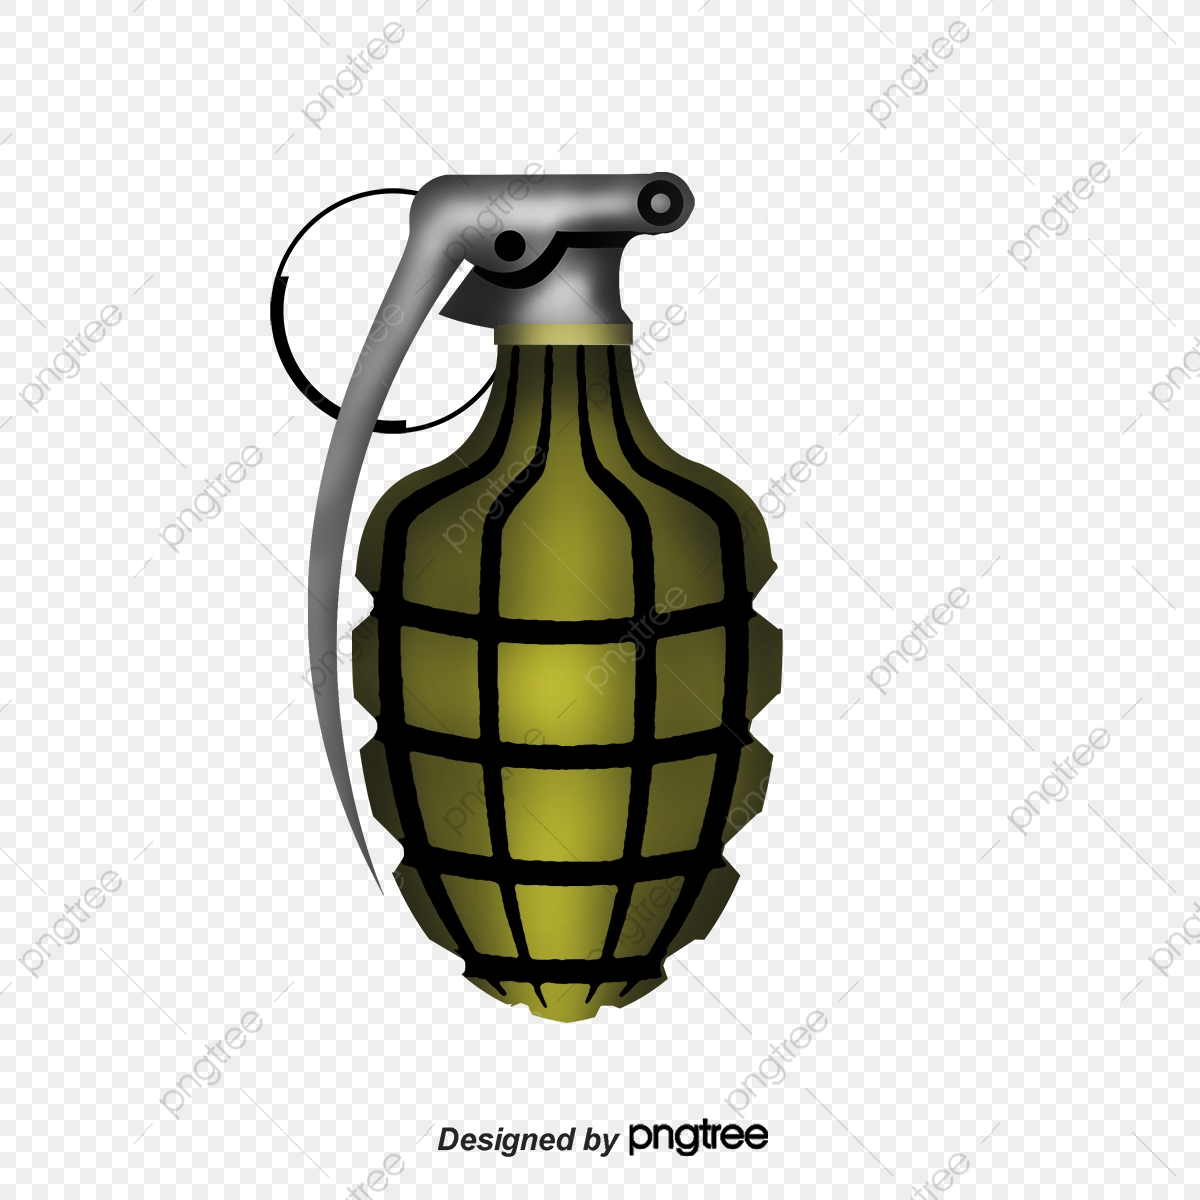 grenade bomb explosion png transparent clipart image and psd file for free download https pngtree com freepng grenade 808460 html